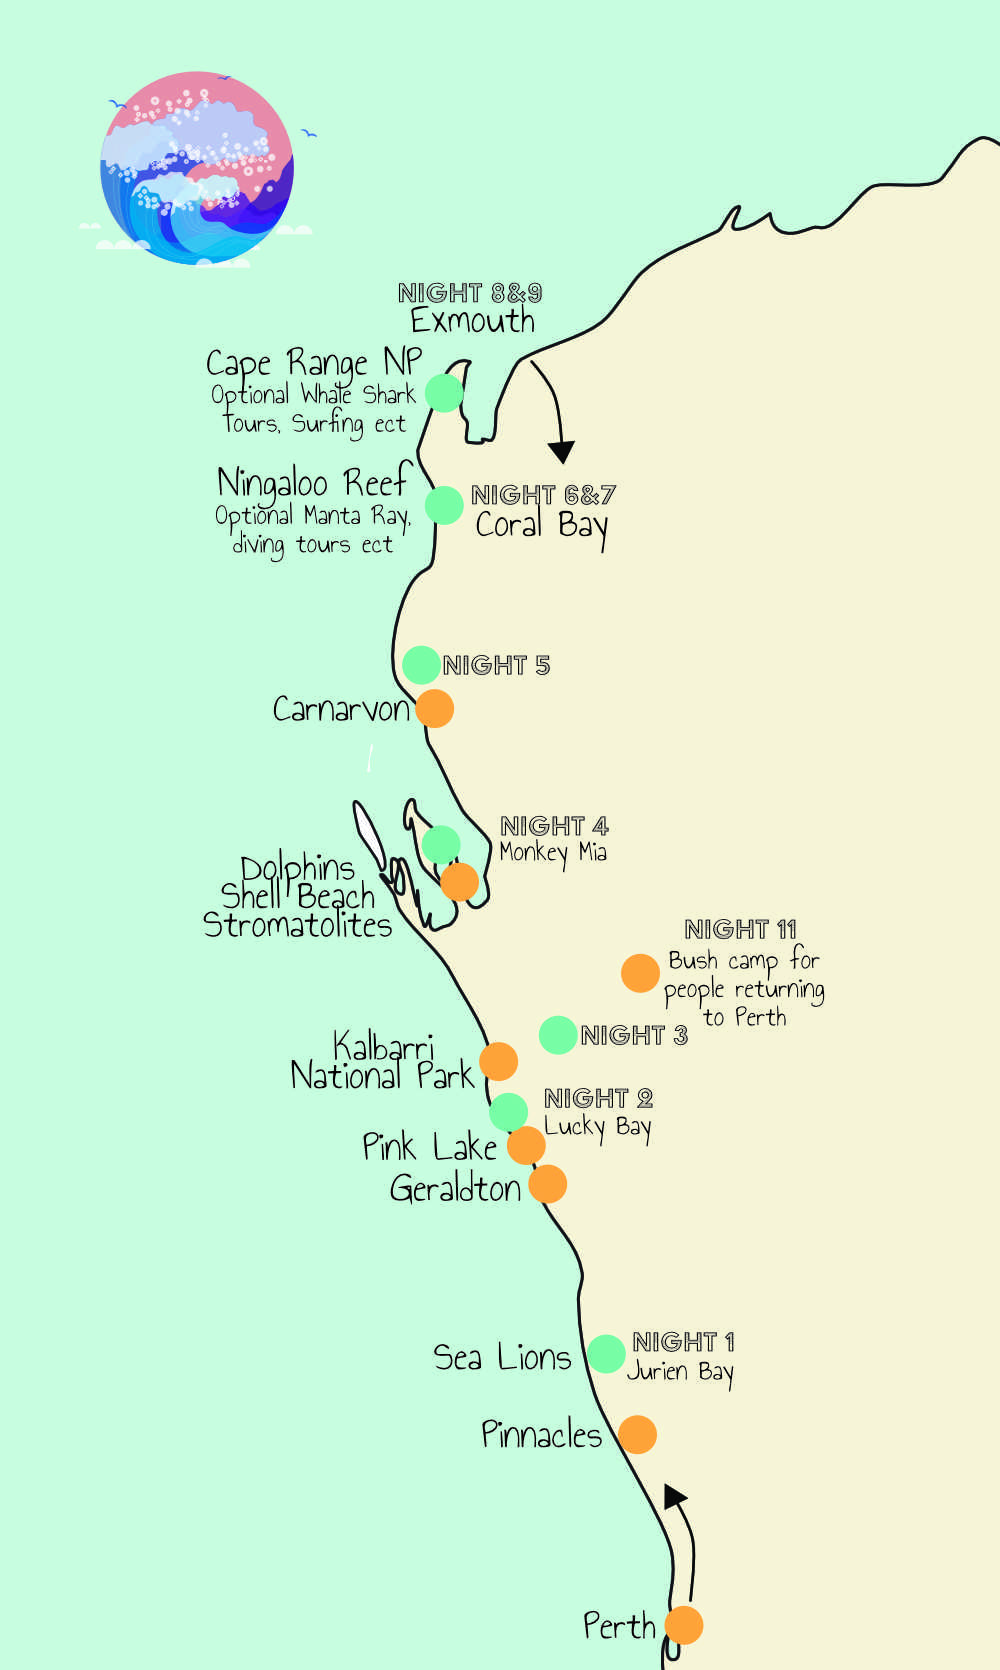 Amazing backpackers Perth To Exmouth Tour in Western Australia. The premier tourist attraction including white sand beaches, pinnacles perth, whale sharks and much more